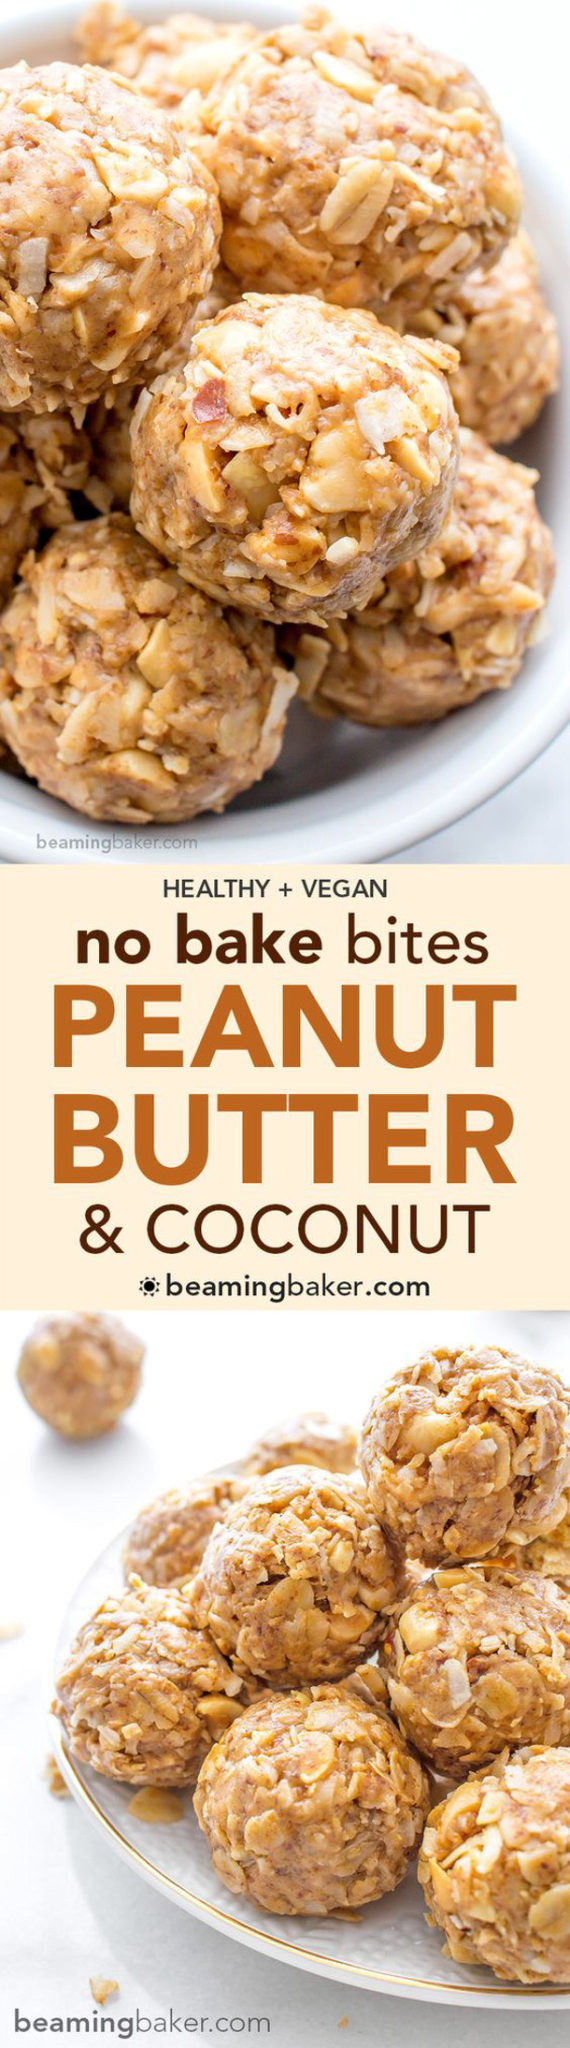 Peanut Butter Healthy Snacks  Healthy Snacks and Treats Recipes The BEST and Yummiest